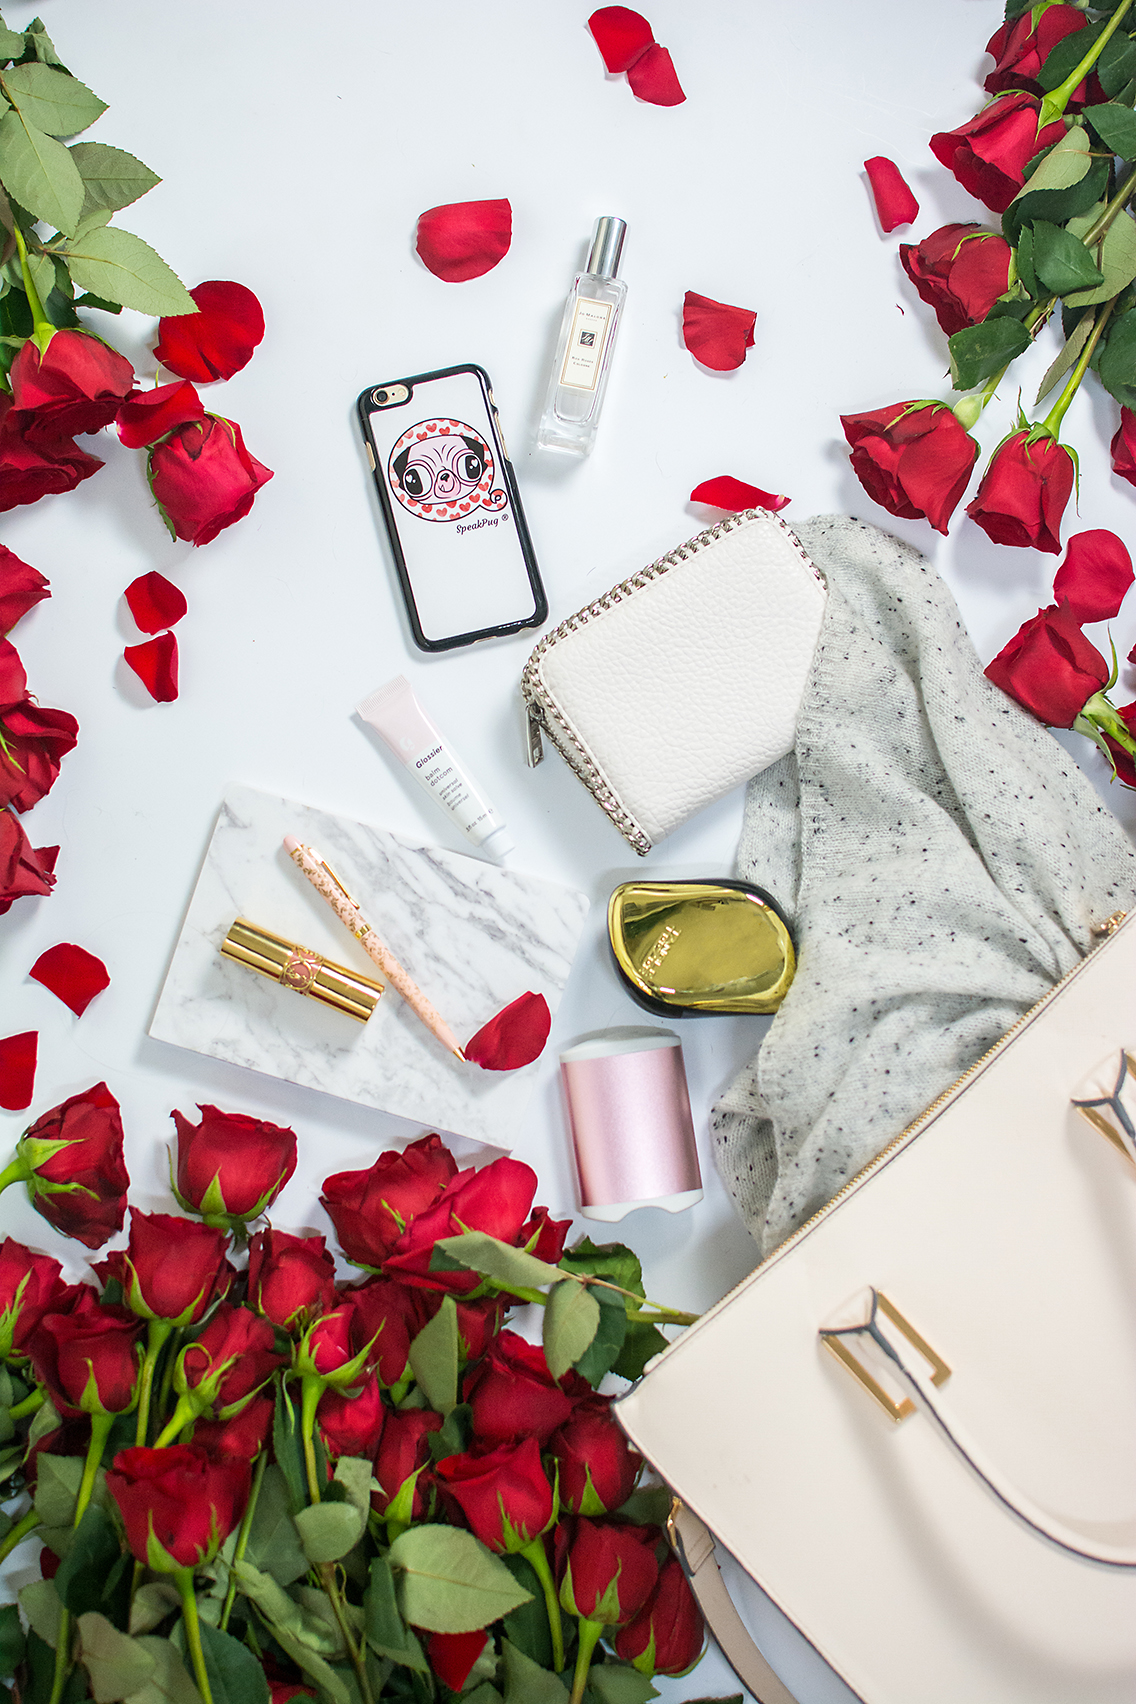 H&M Tote Jo Malone Red Roses Glossier Balm YSL Lips 21